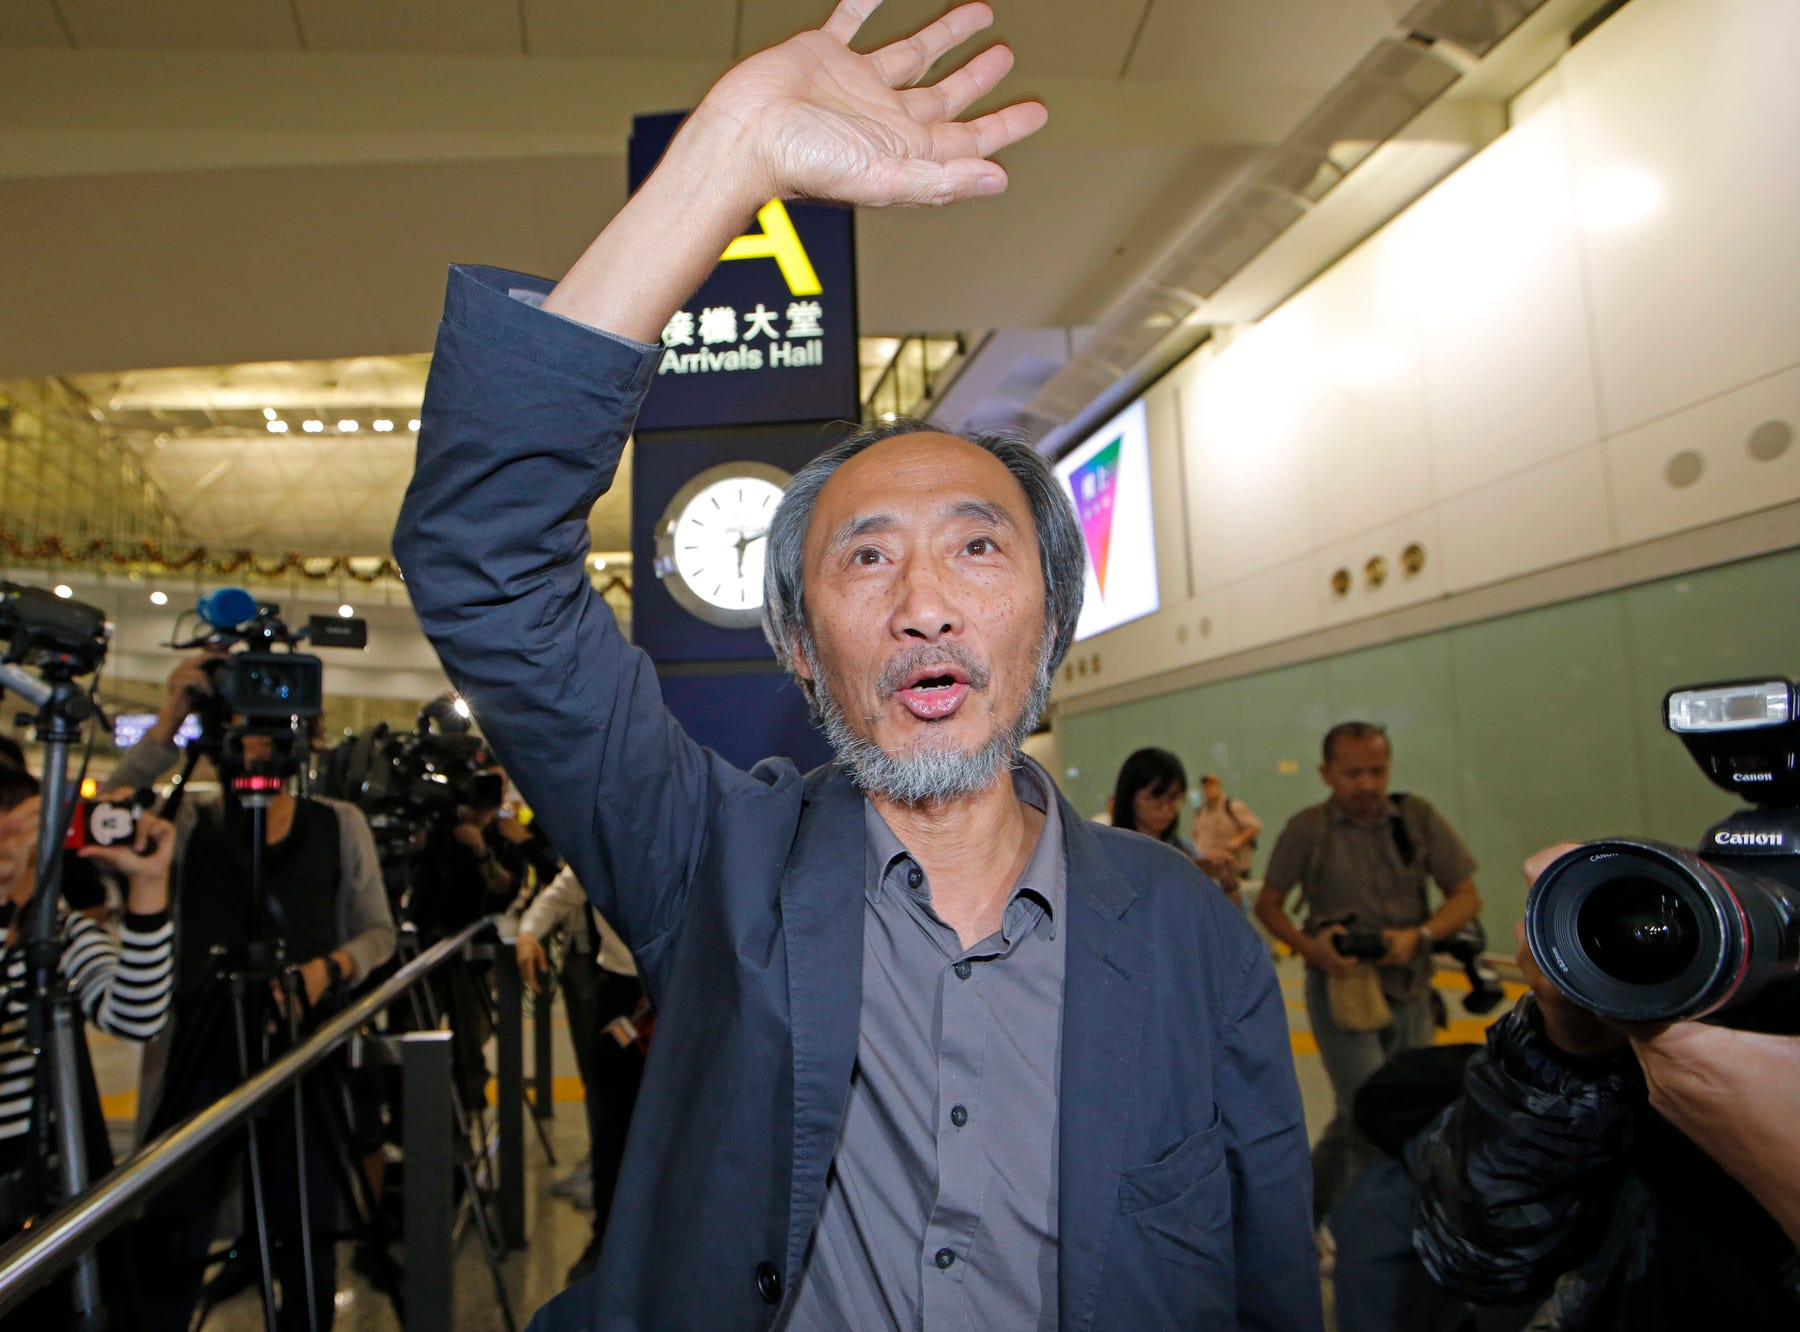 "Chinese dissident writer Ma Jian waves to media after arriving Hong Kong international airport, Friday, Nov. 9, 2018. Despite Mallet's rejection, Hong Kong on Friday permitted dissident writer Ma to enter to attend a literary festival, even after an arts venue in the city canceled his appearance. Ma, whose novels frequently satirize China's communist leaders, told reporters he experienced nothing unusual while passing through passport control and that organizers were still lining-up a place for him to speak. ""The lecture will definitely happen. If there is a single Hong Kong person who is willing to listen, or a single reader who contacts me, I will be there,"" Ma said. (AP Photo/Kin Cheung)"